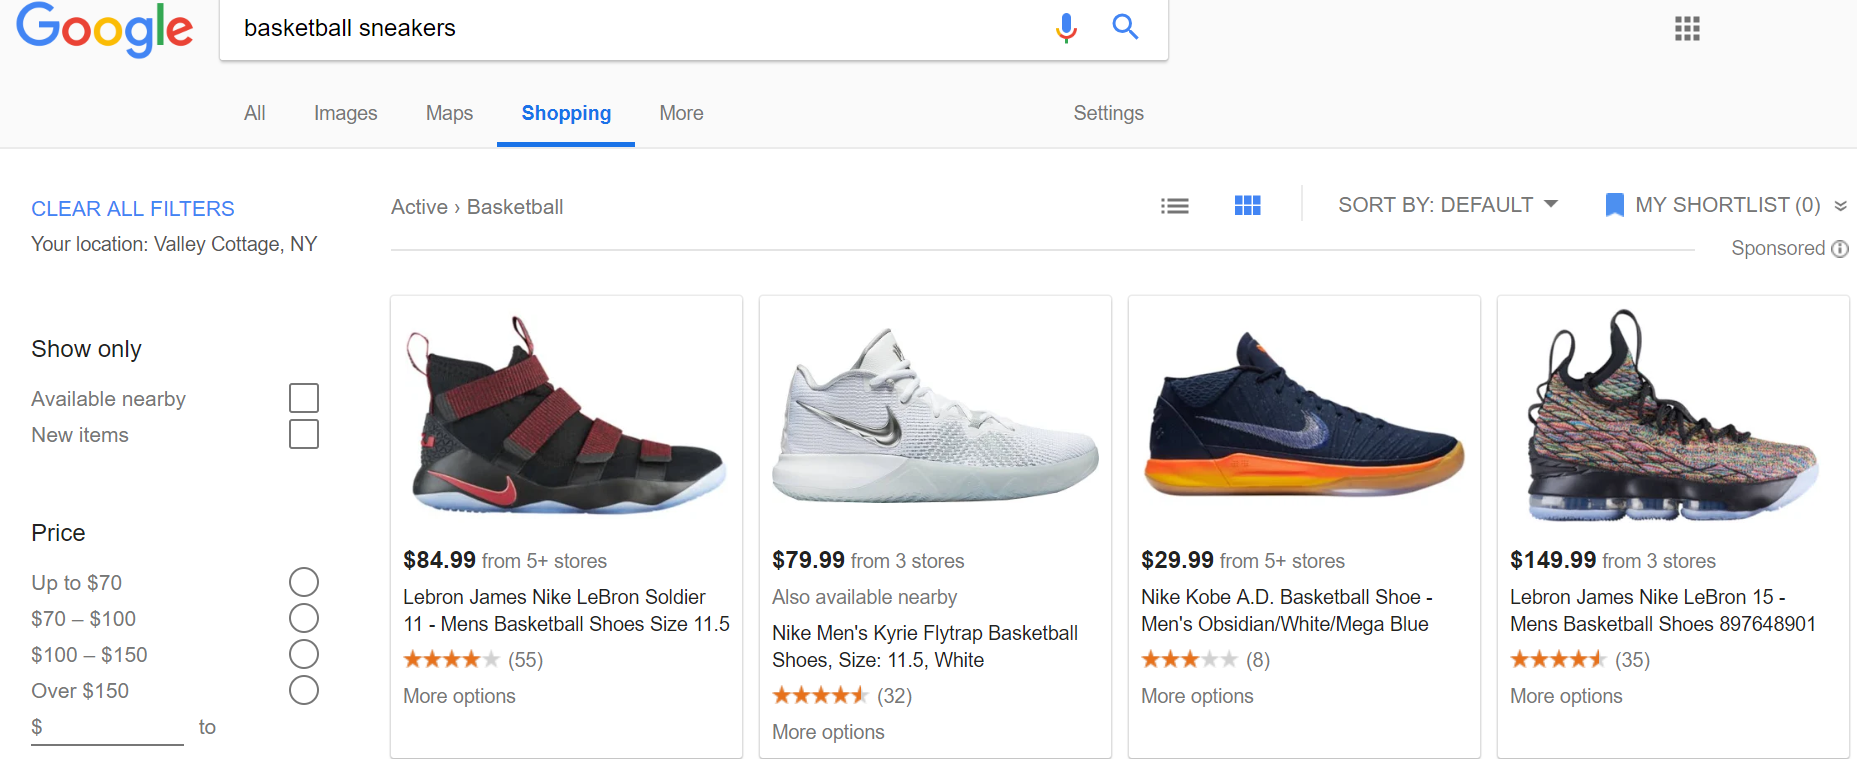 Google Shopping Tab Example